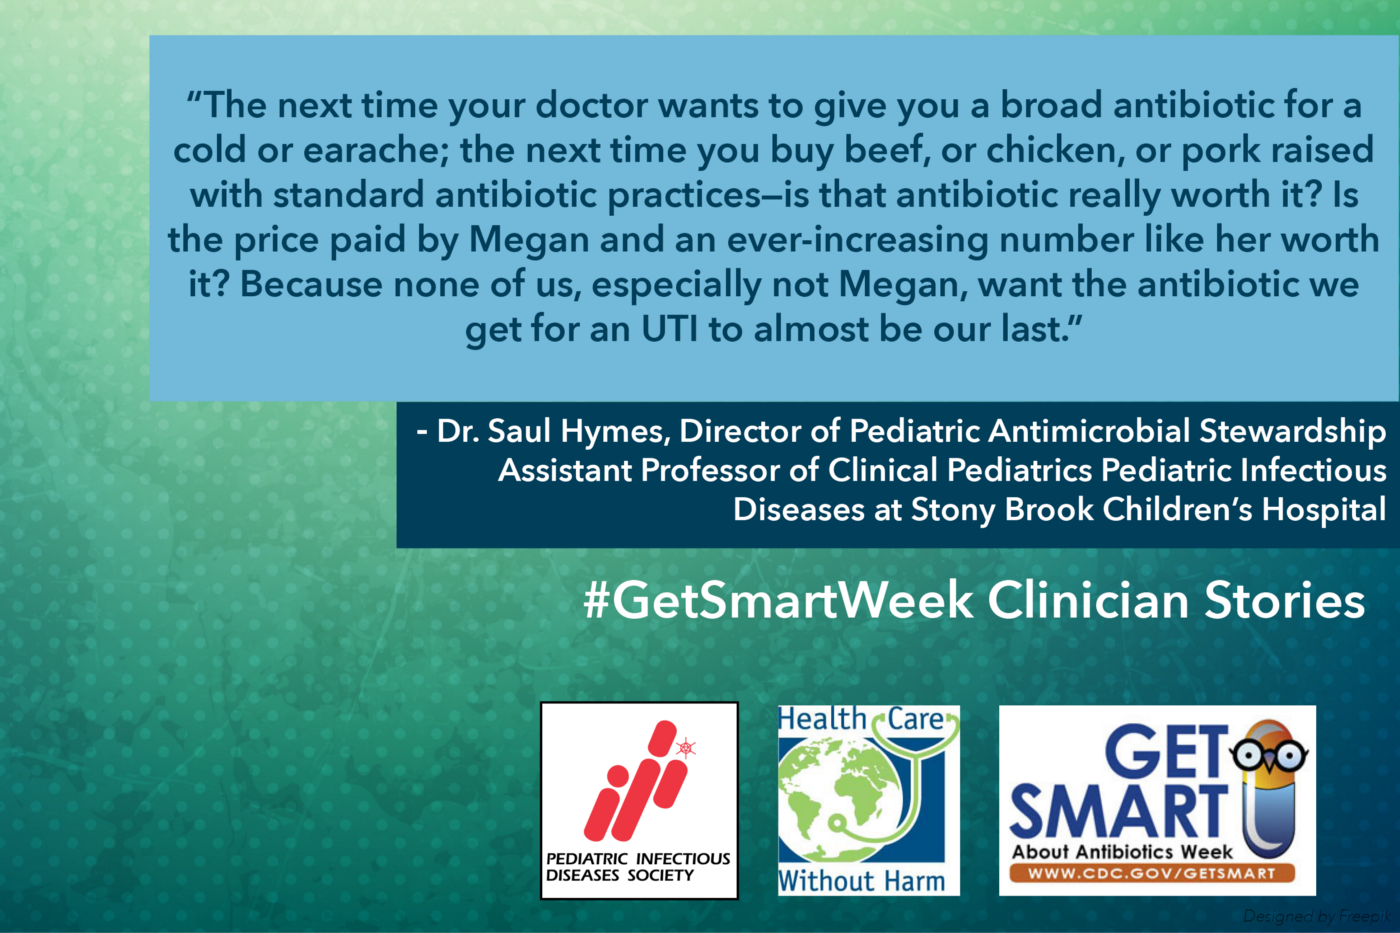 Clinicians Get Smart About Antibiotics Week Storytelling